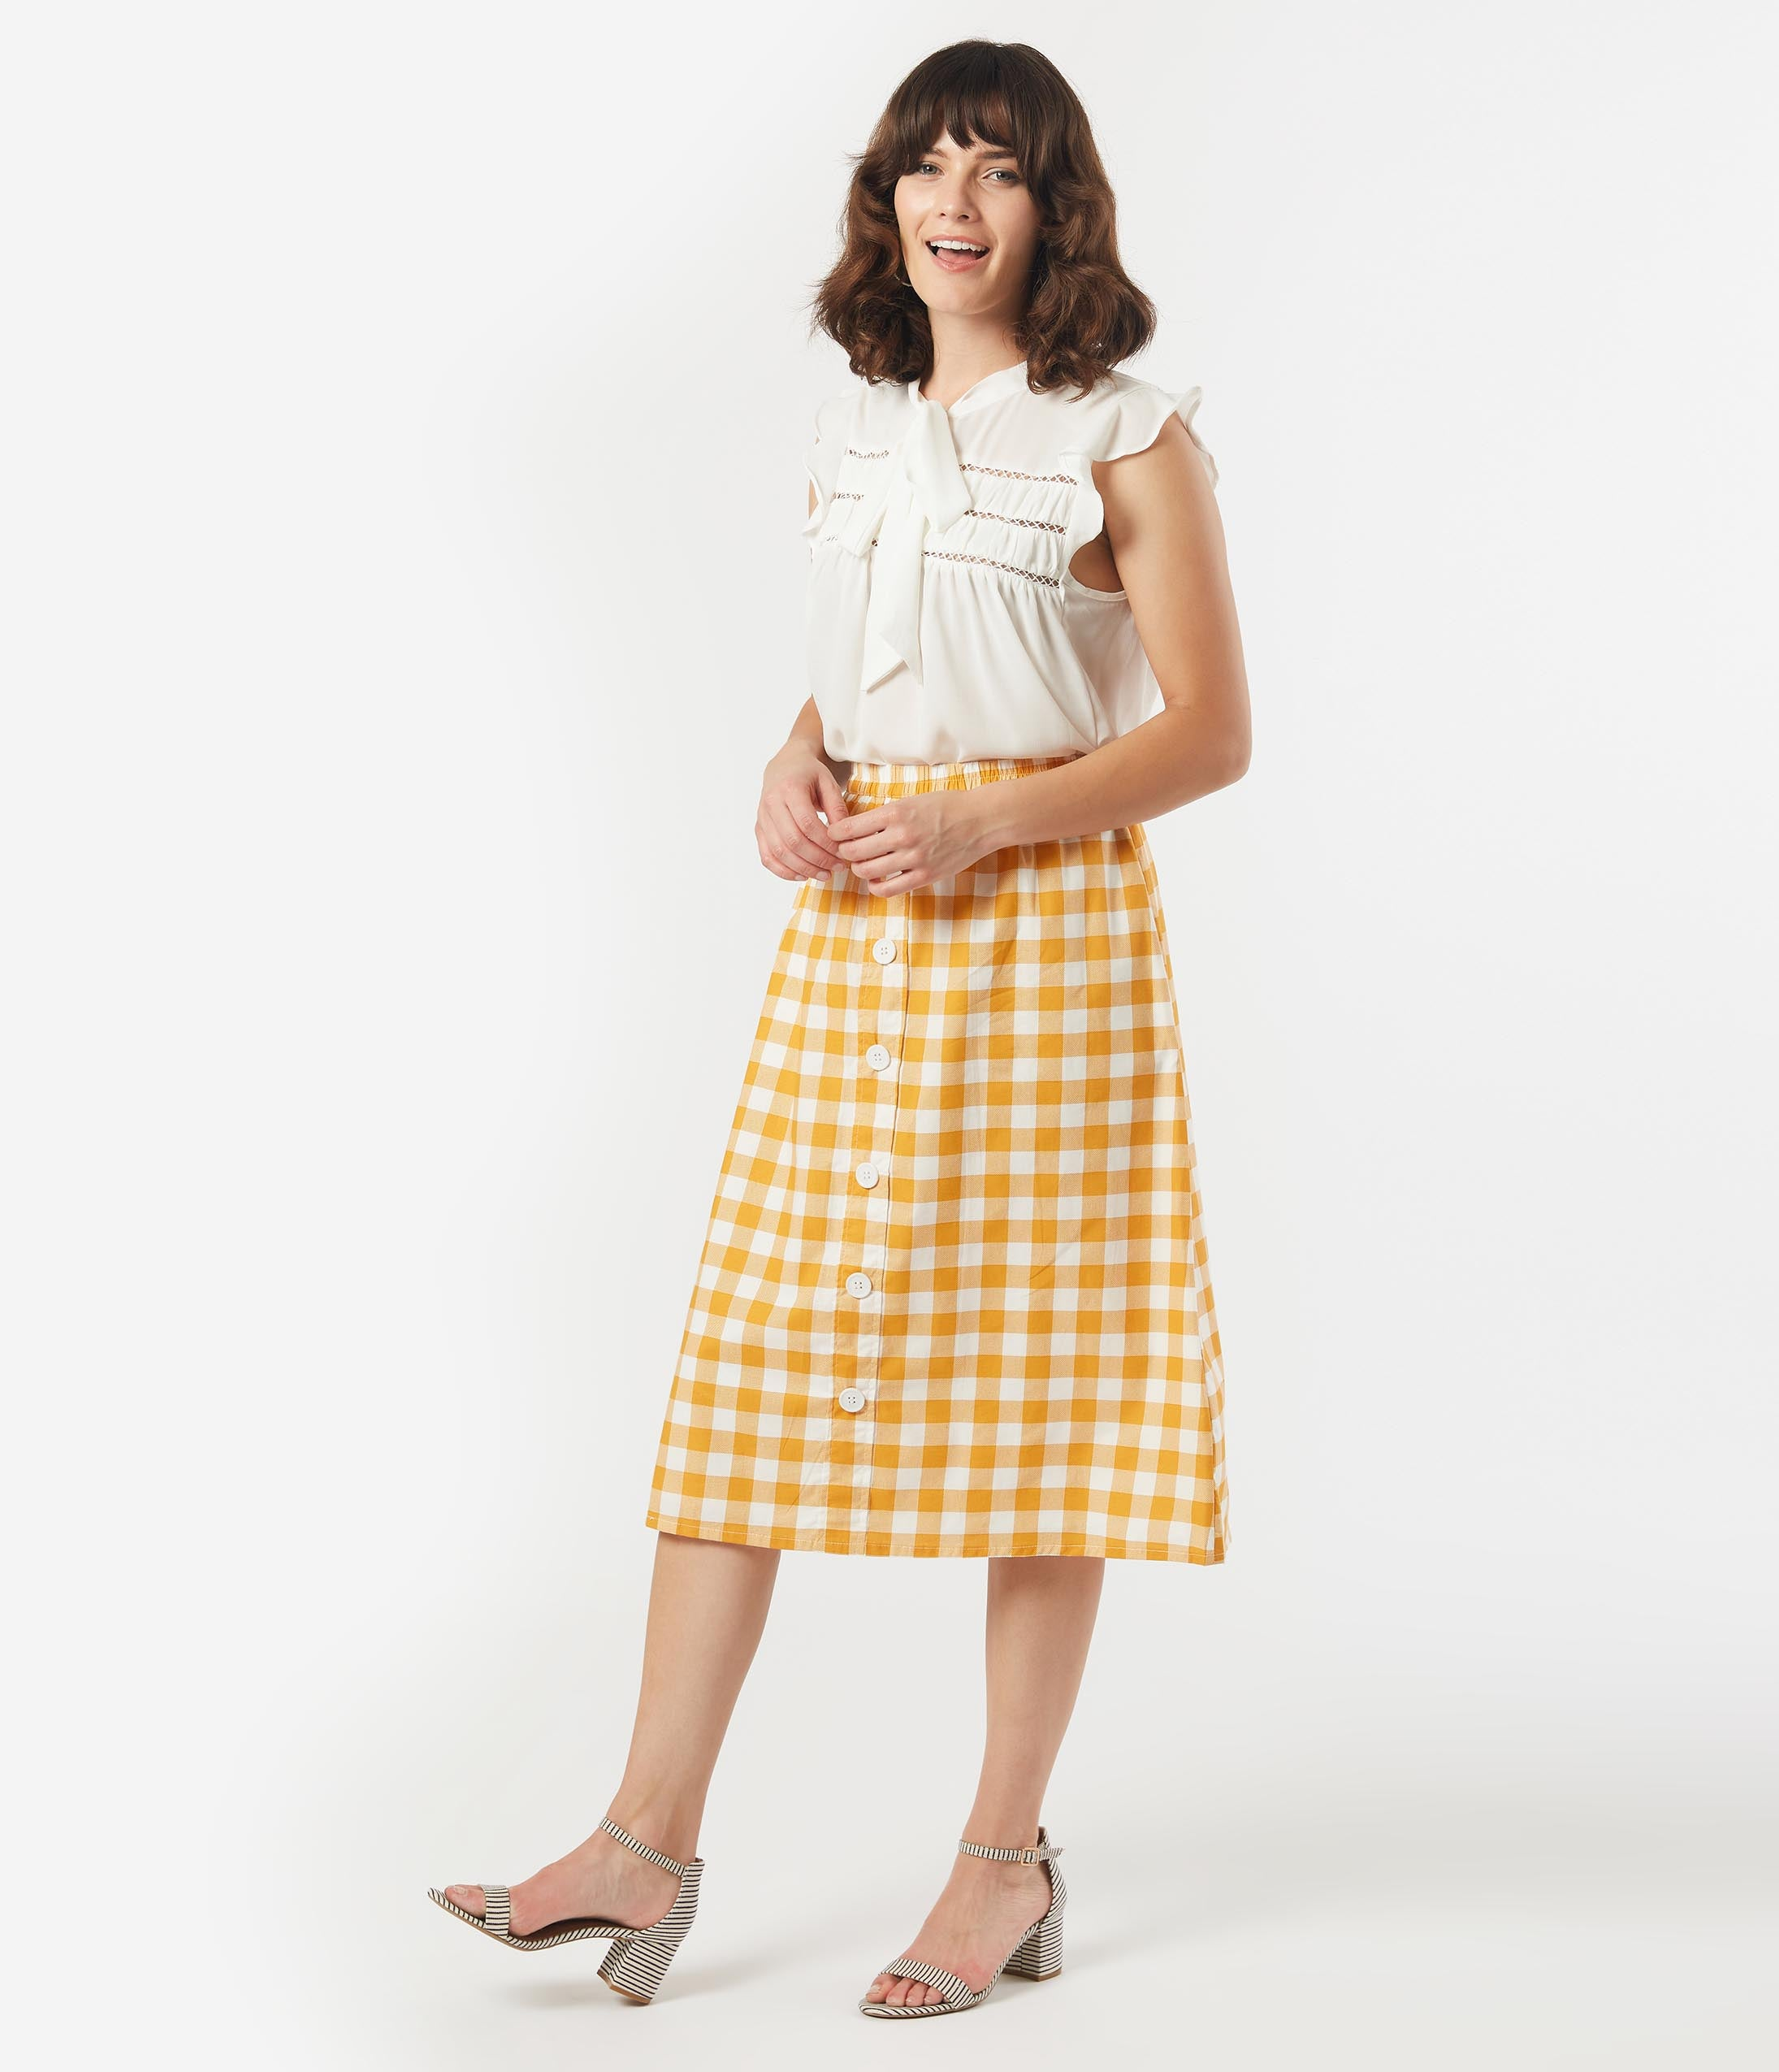 1940s Style Skirts- Vintage High Waisted Skirts 1940S Style Mustard  White Gingham Midi Skirt $42.00 AT vintagedancer.com